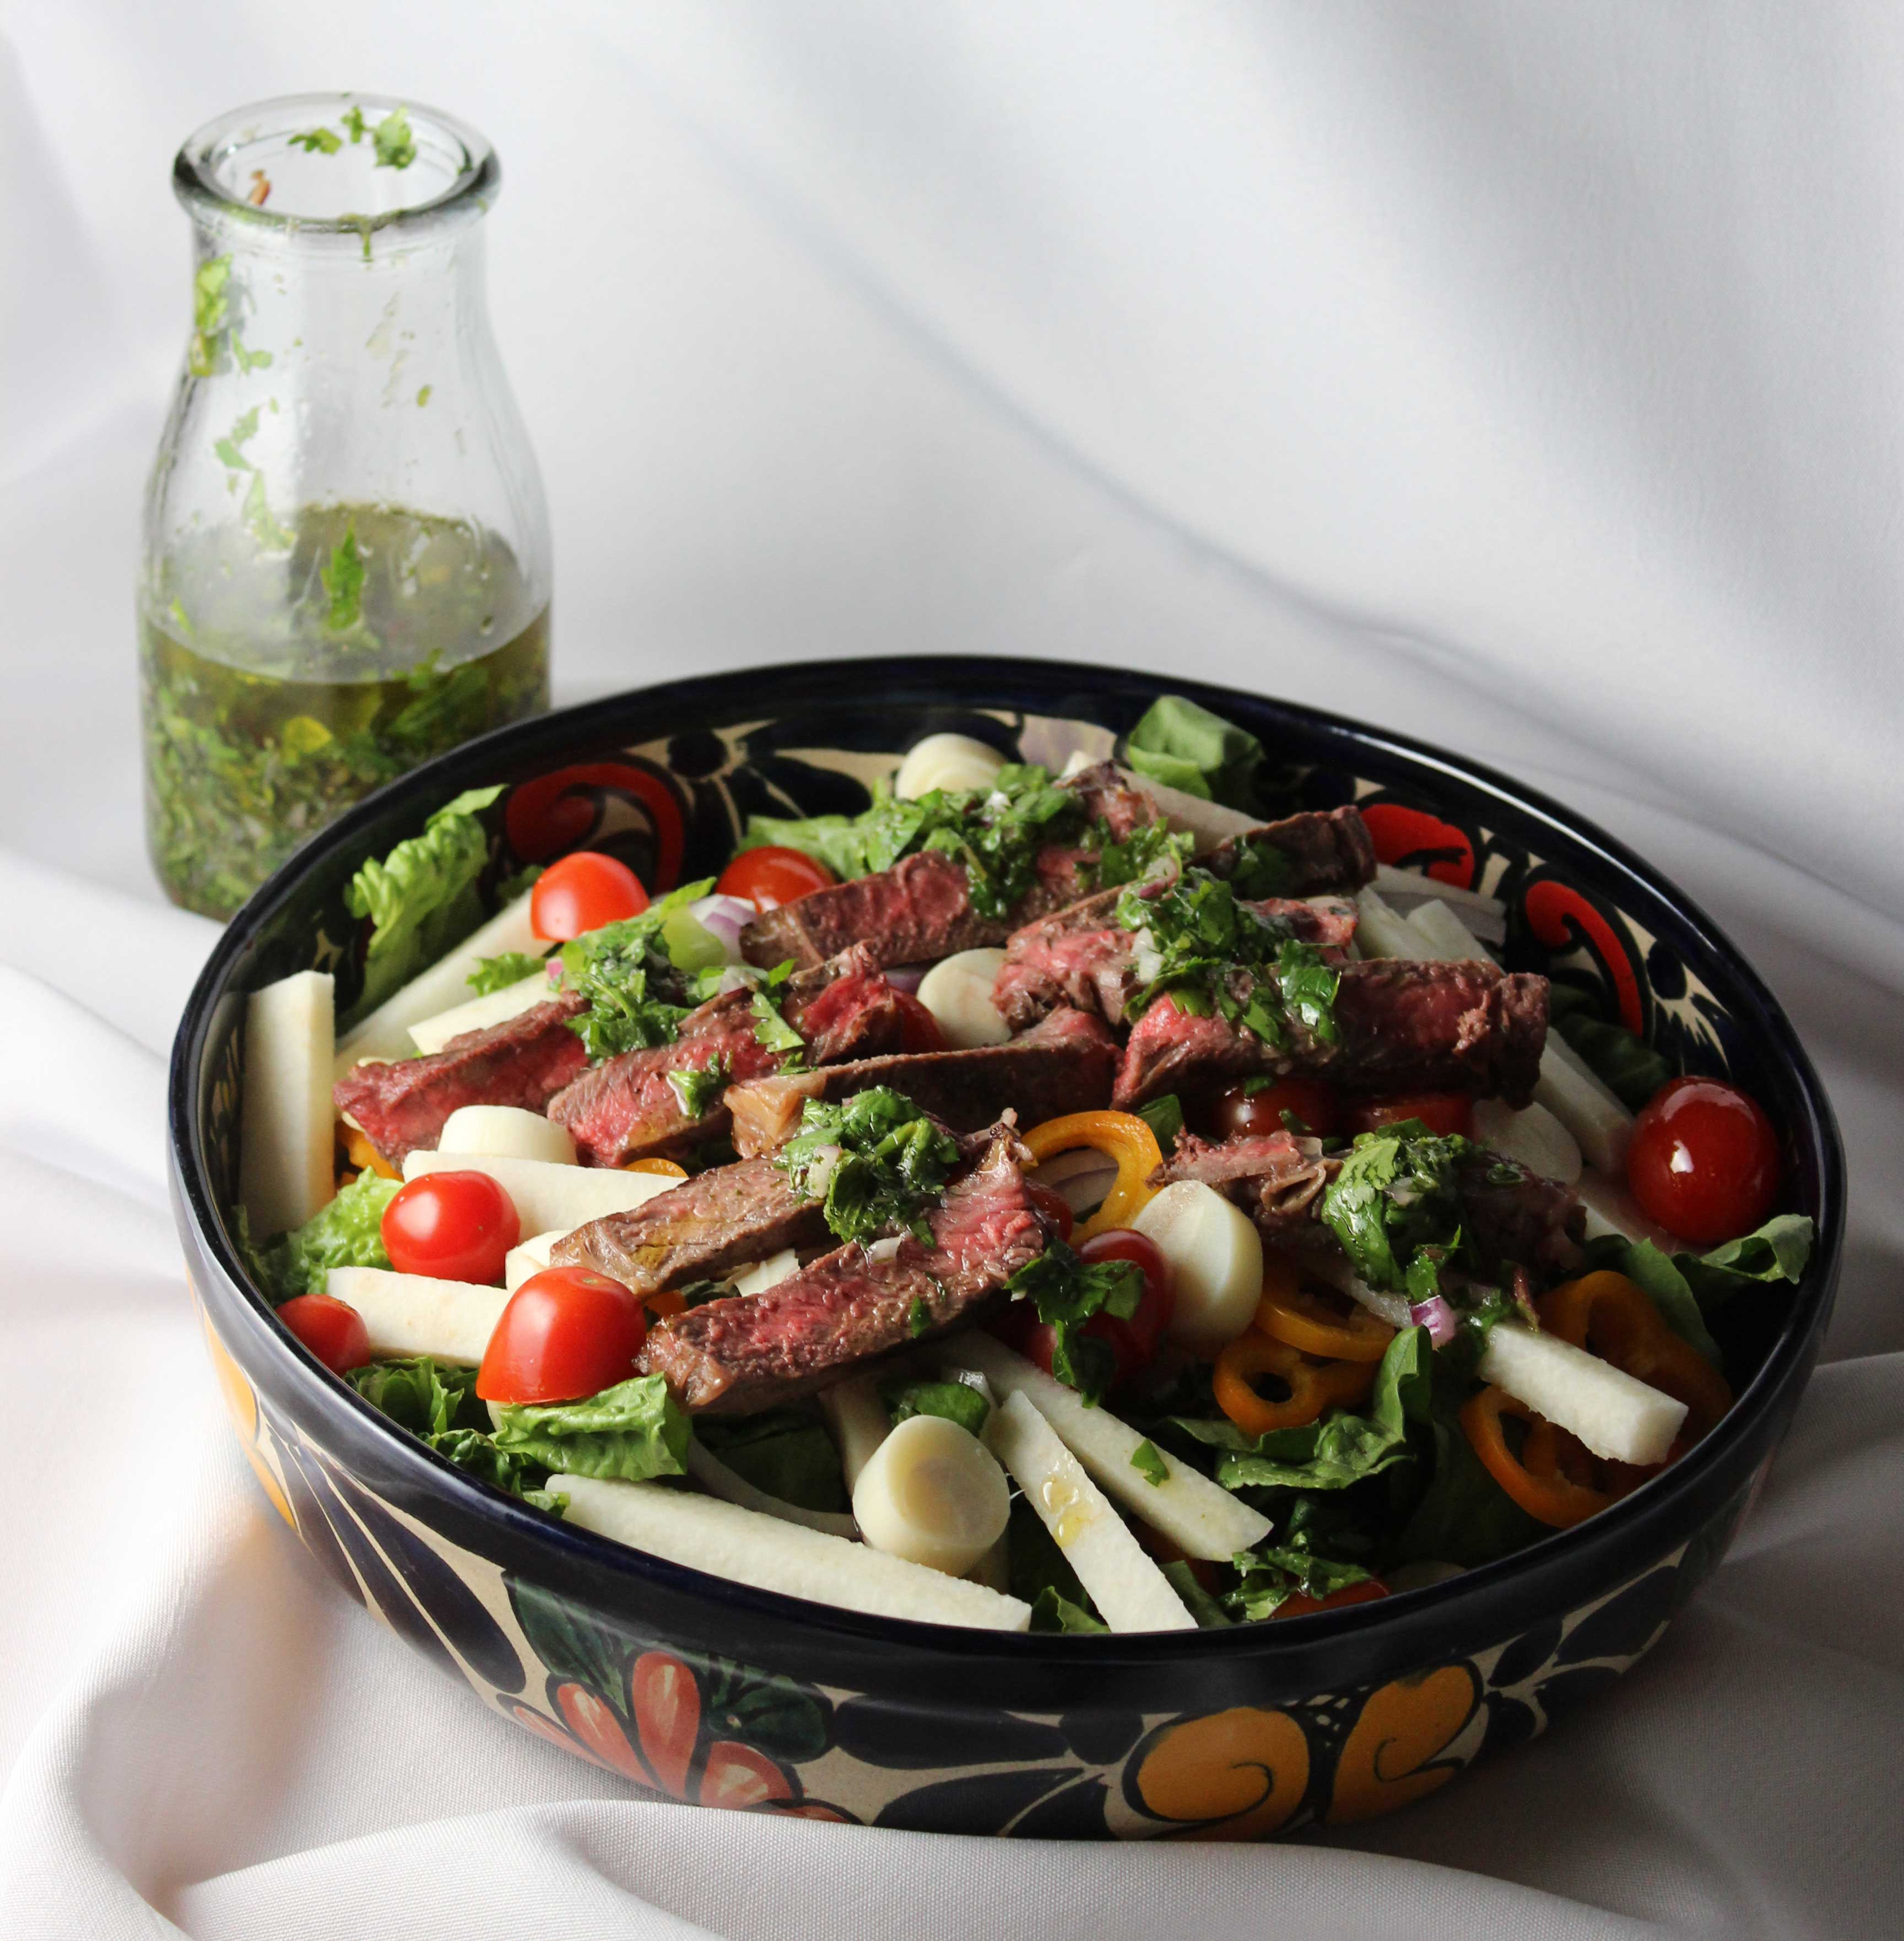 Chimichurri Steak Salad - Cooking Onions